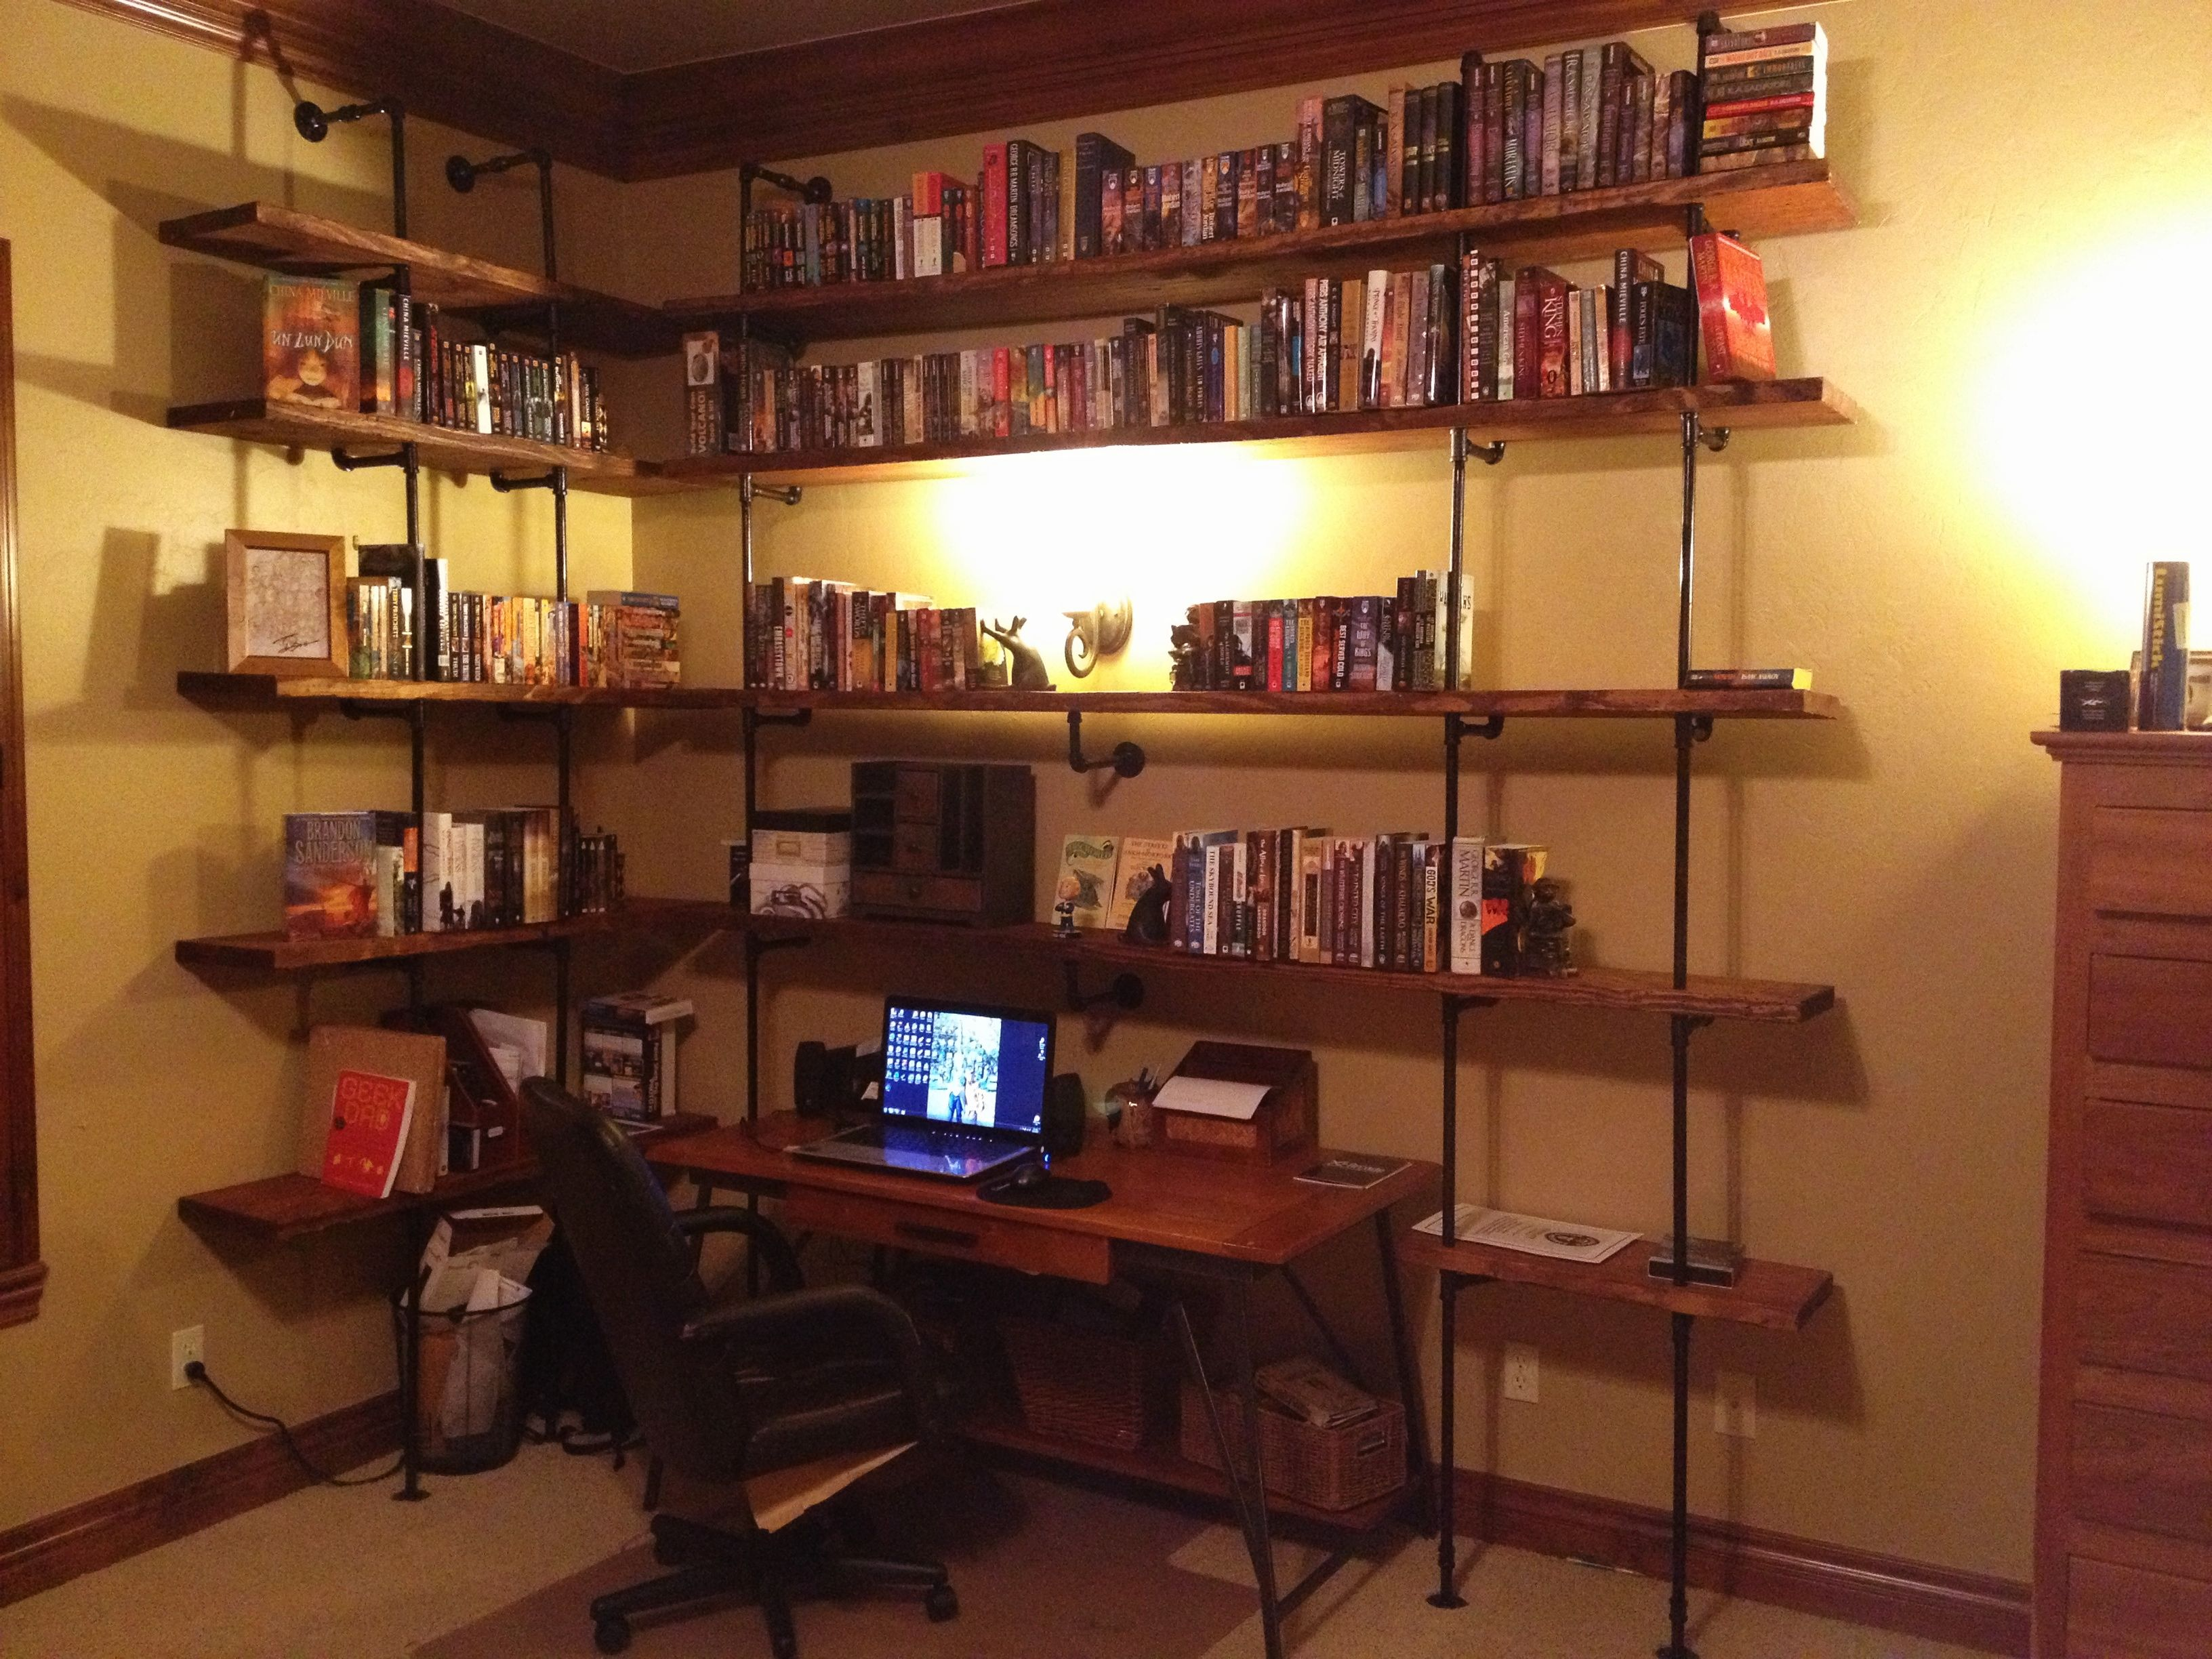 Pvc Pipe Bookshelf Pipe Bookshelves Built Around A Desk Uses Inexpensive 2x12 Boards